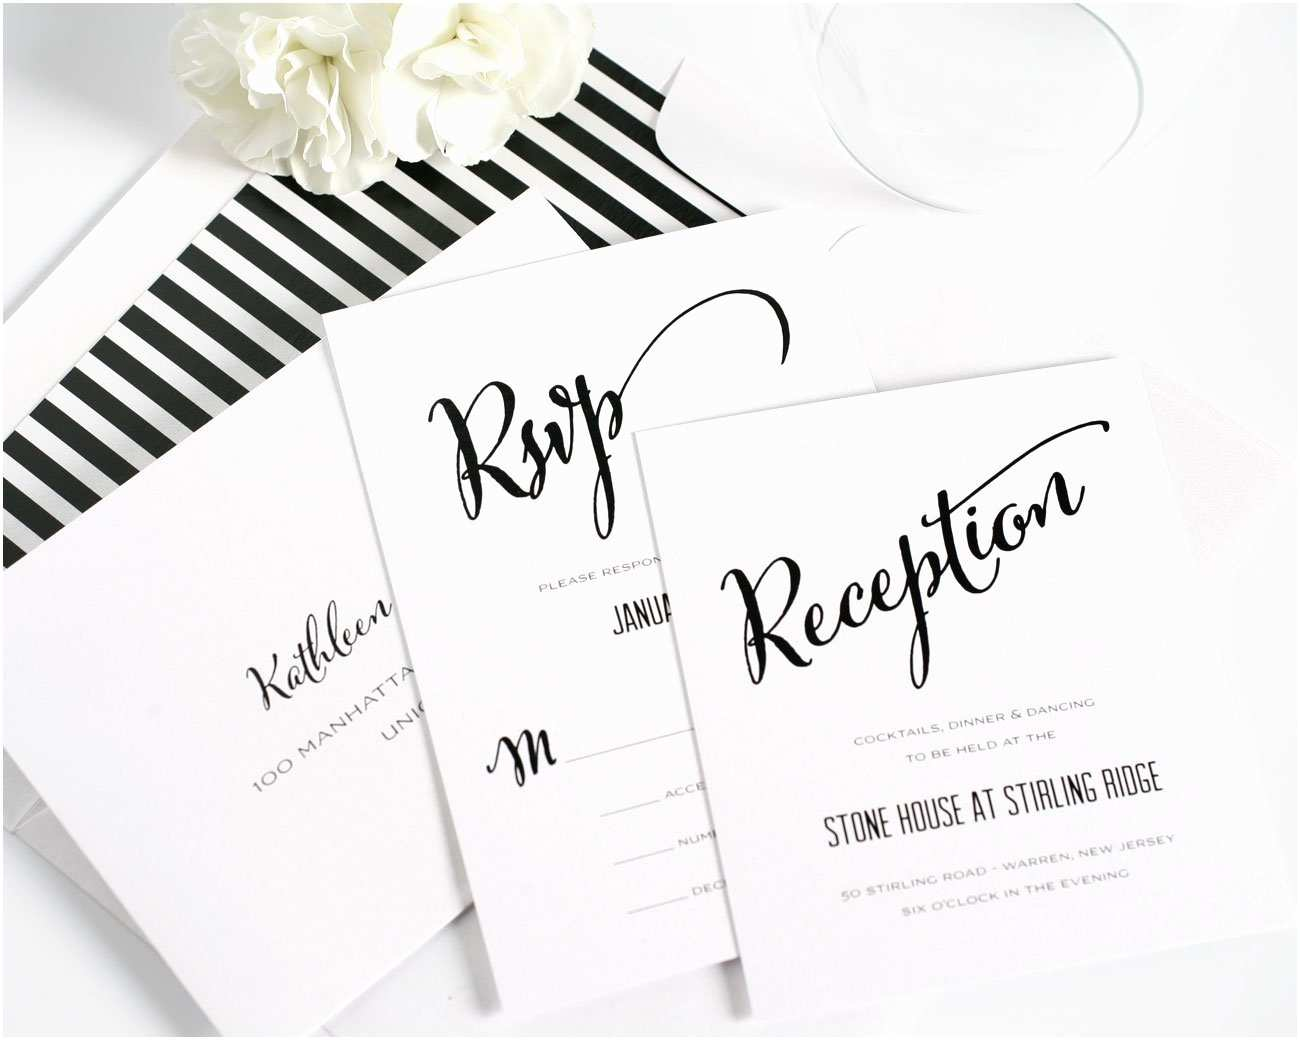 Calligraphy Wedding Invitations Modern Calligraphy Wedding Invitations In Black and White